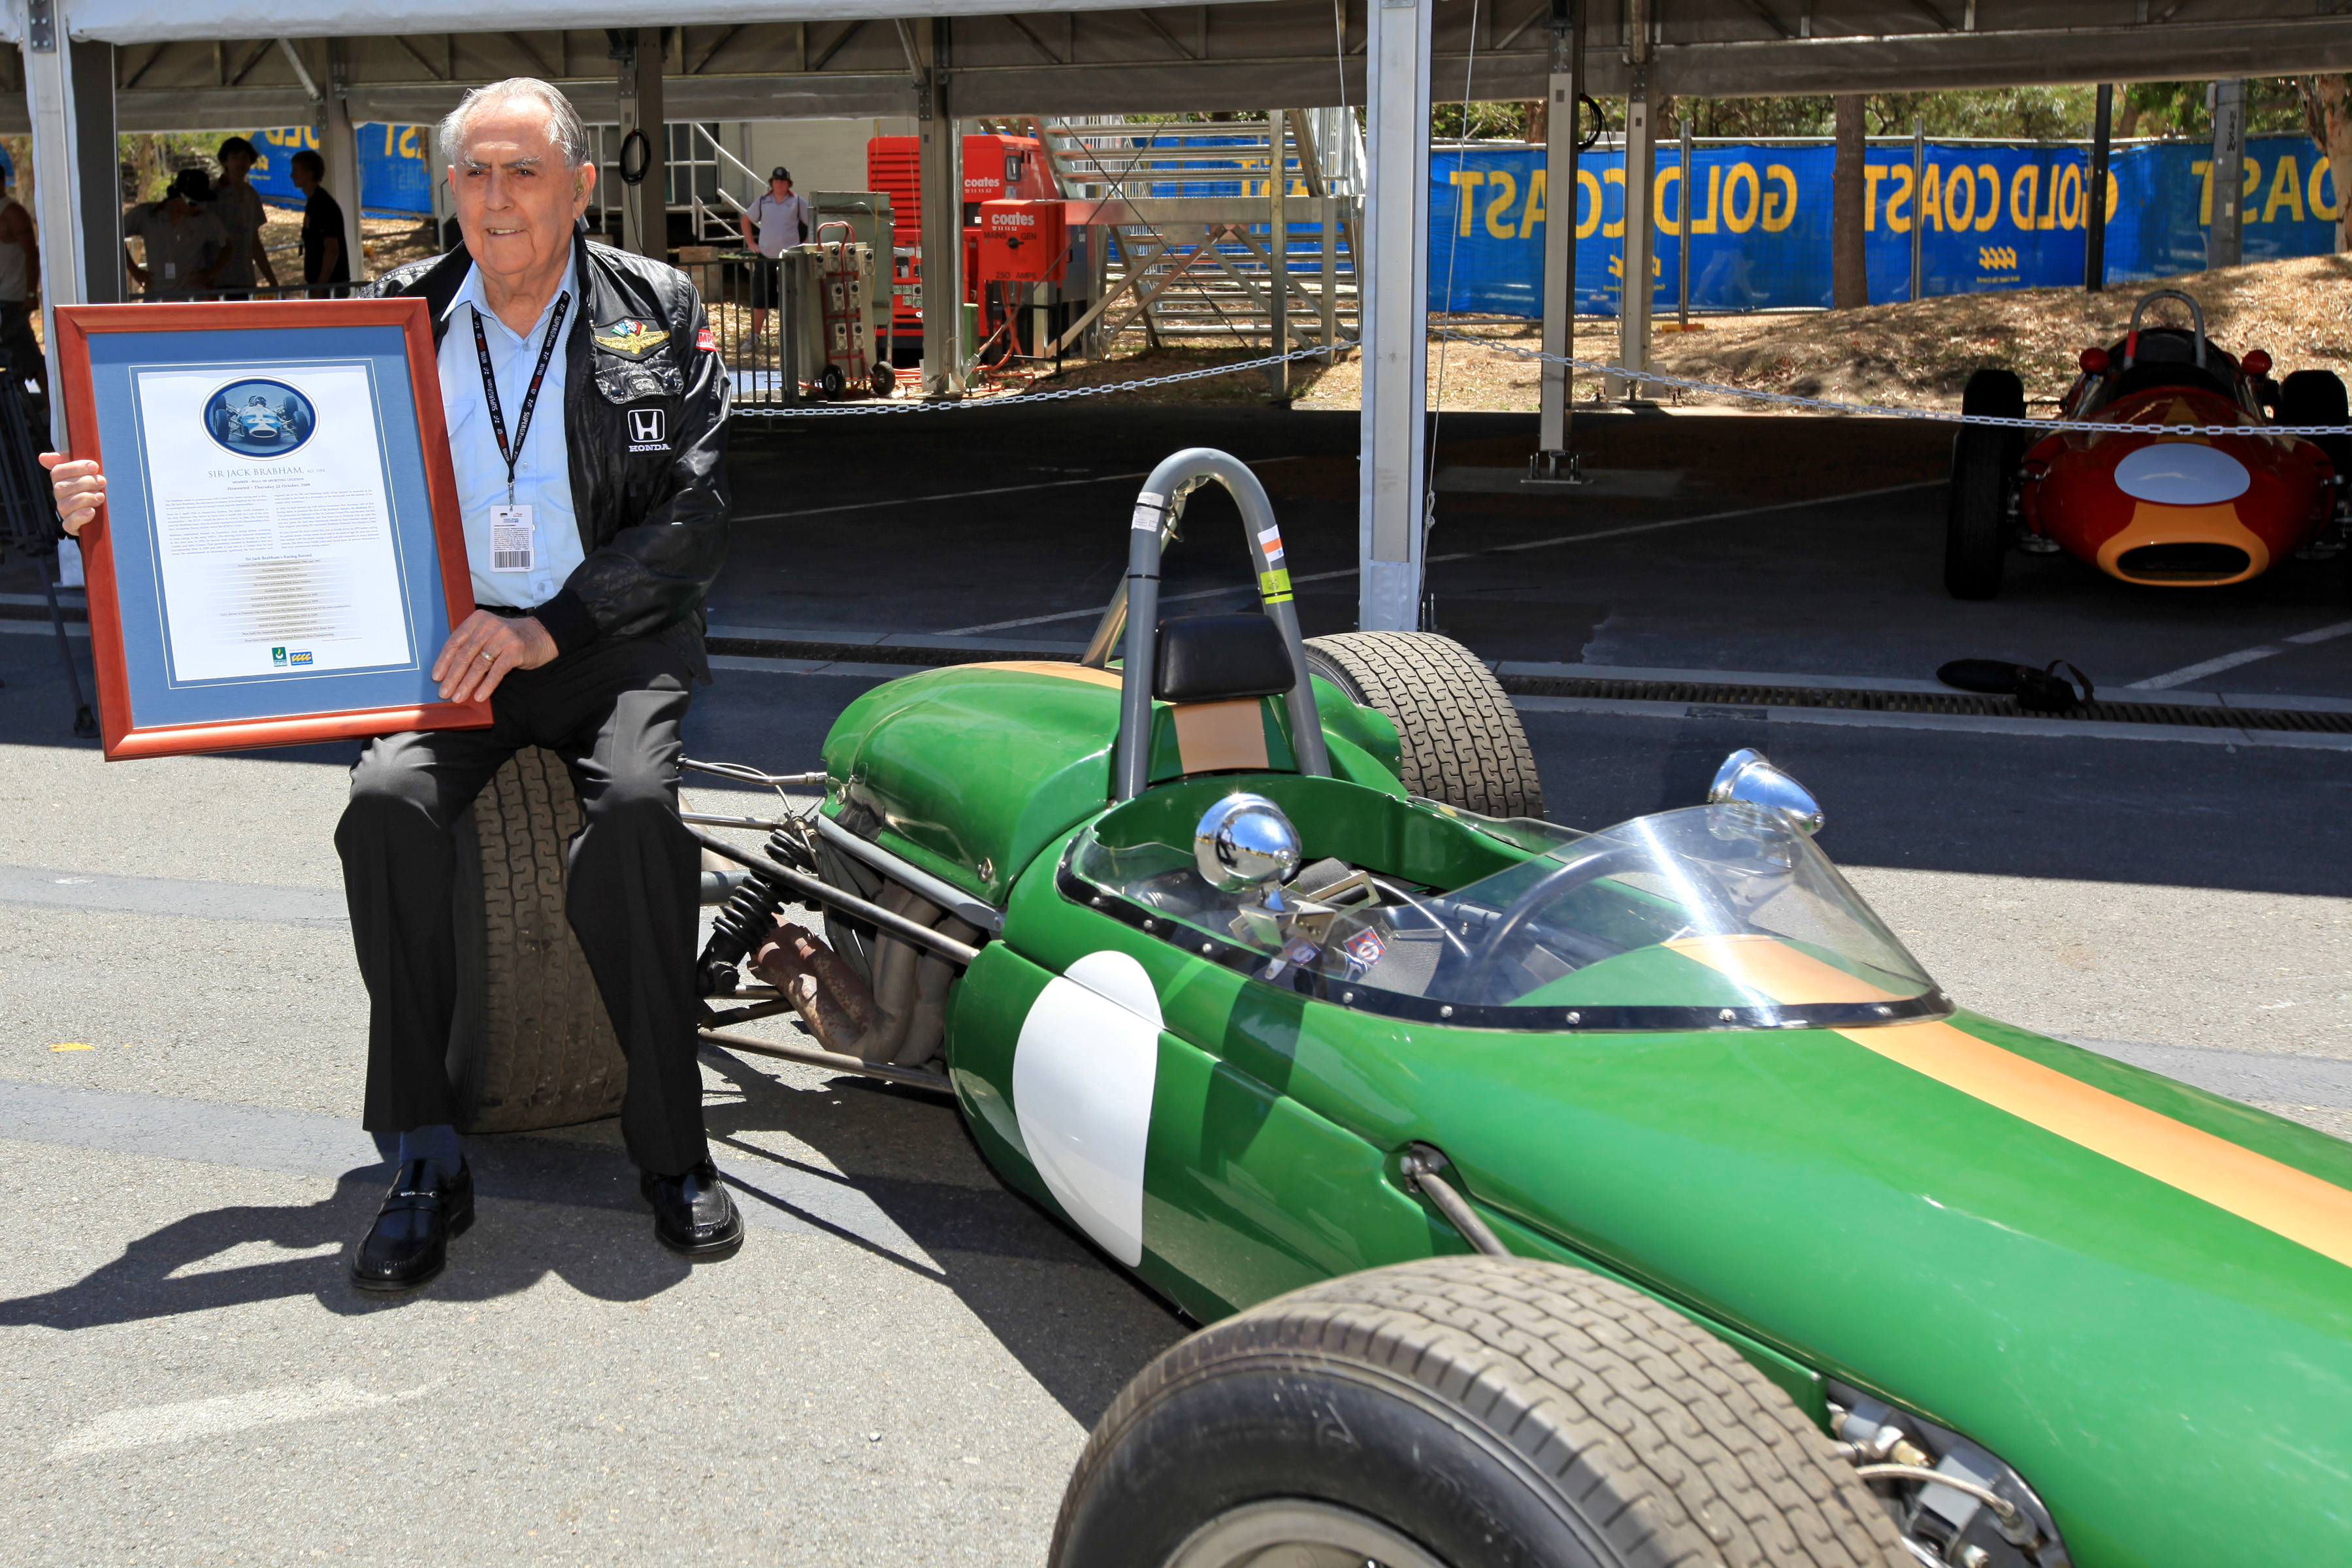 Sir Jack honoured at Day 1 of SuperGP